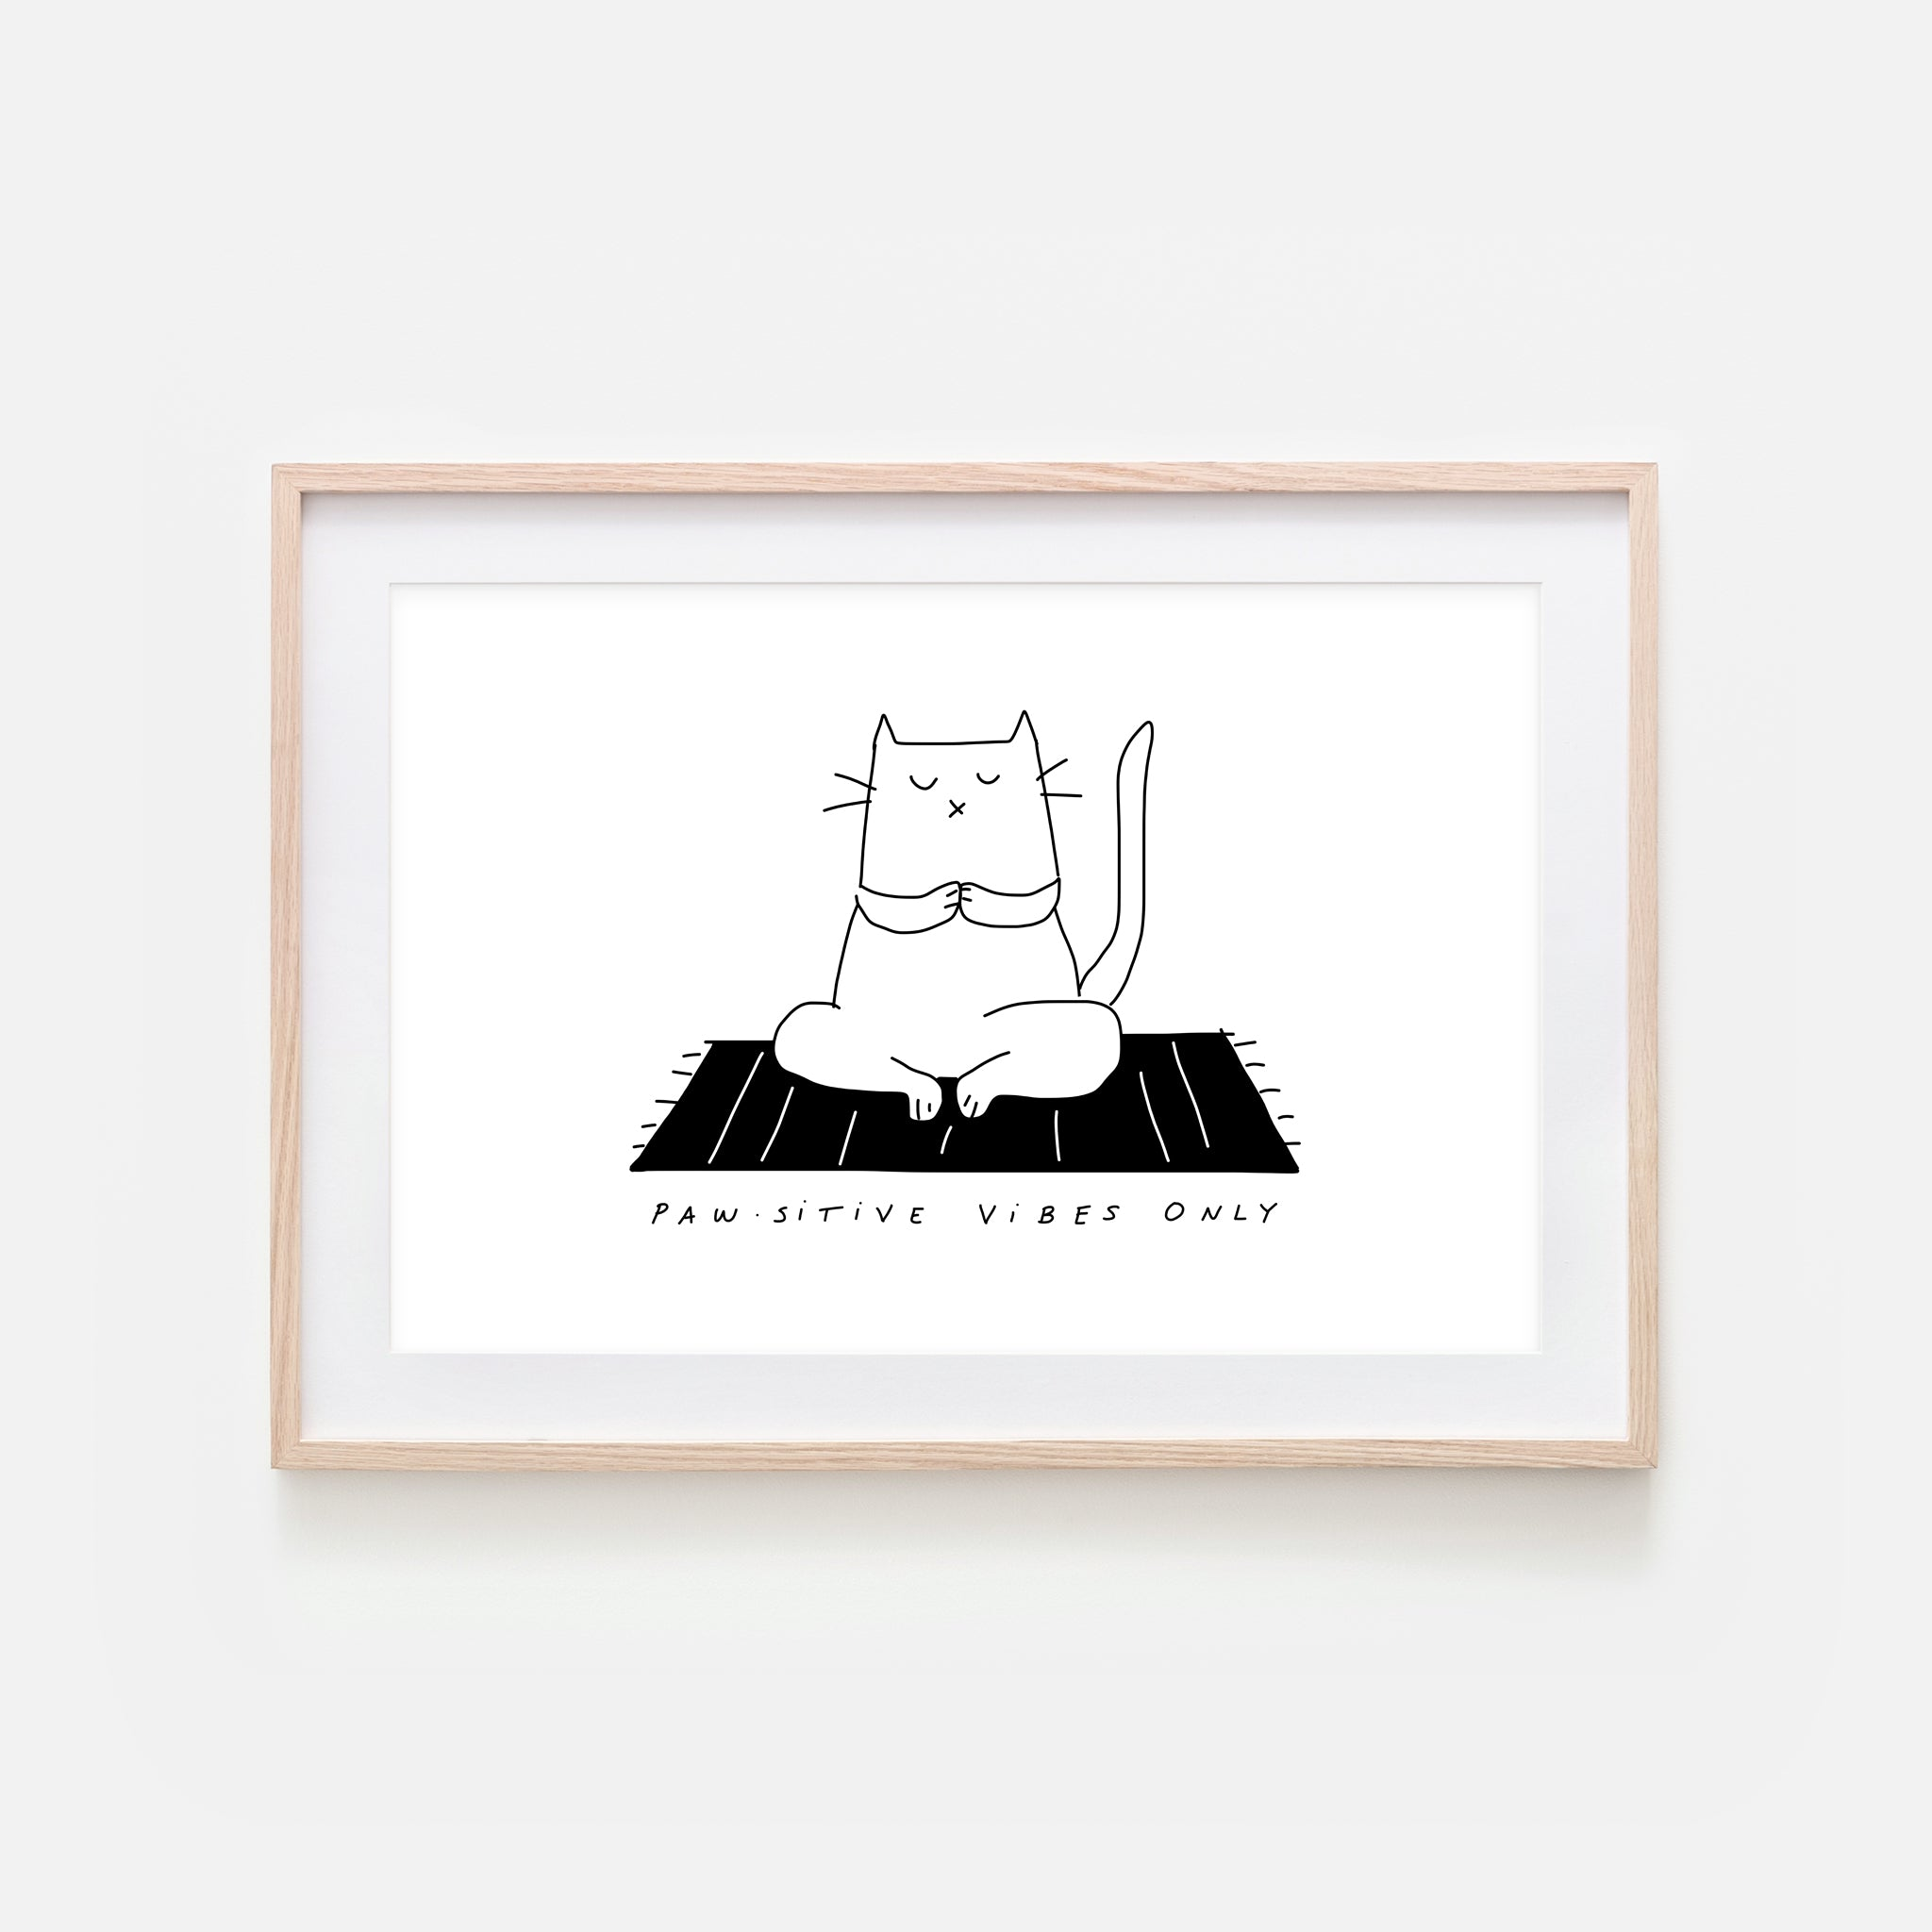 Pawsitive Vibes Only - Yoga Wall Art - White Cat Line Drawing - Fitness Exercise Room Decor - Print, Poster or Printable Download